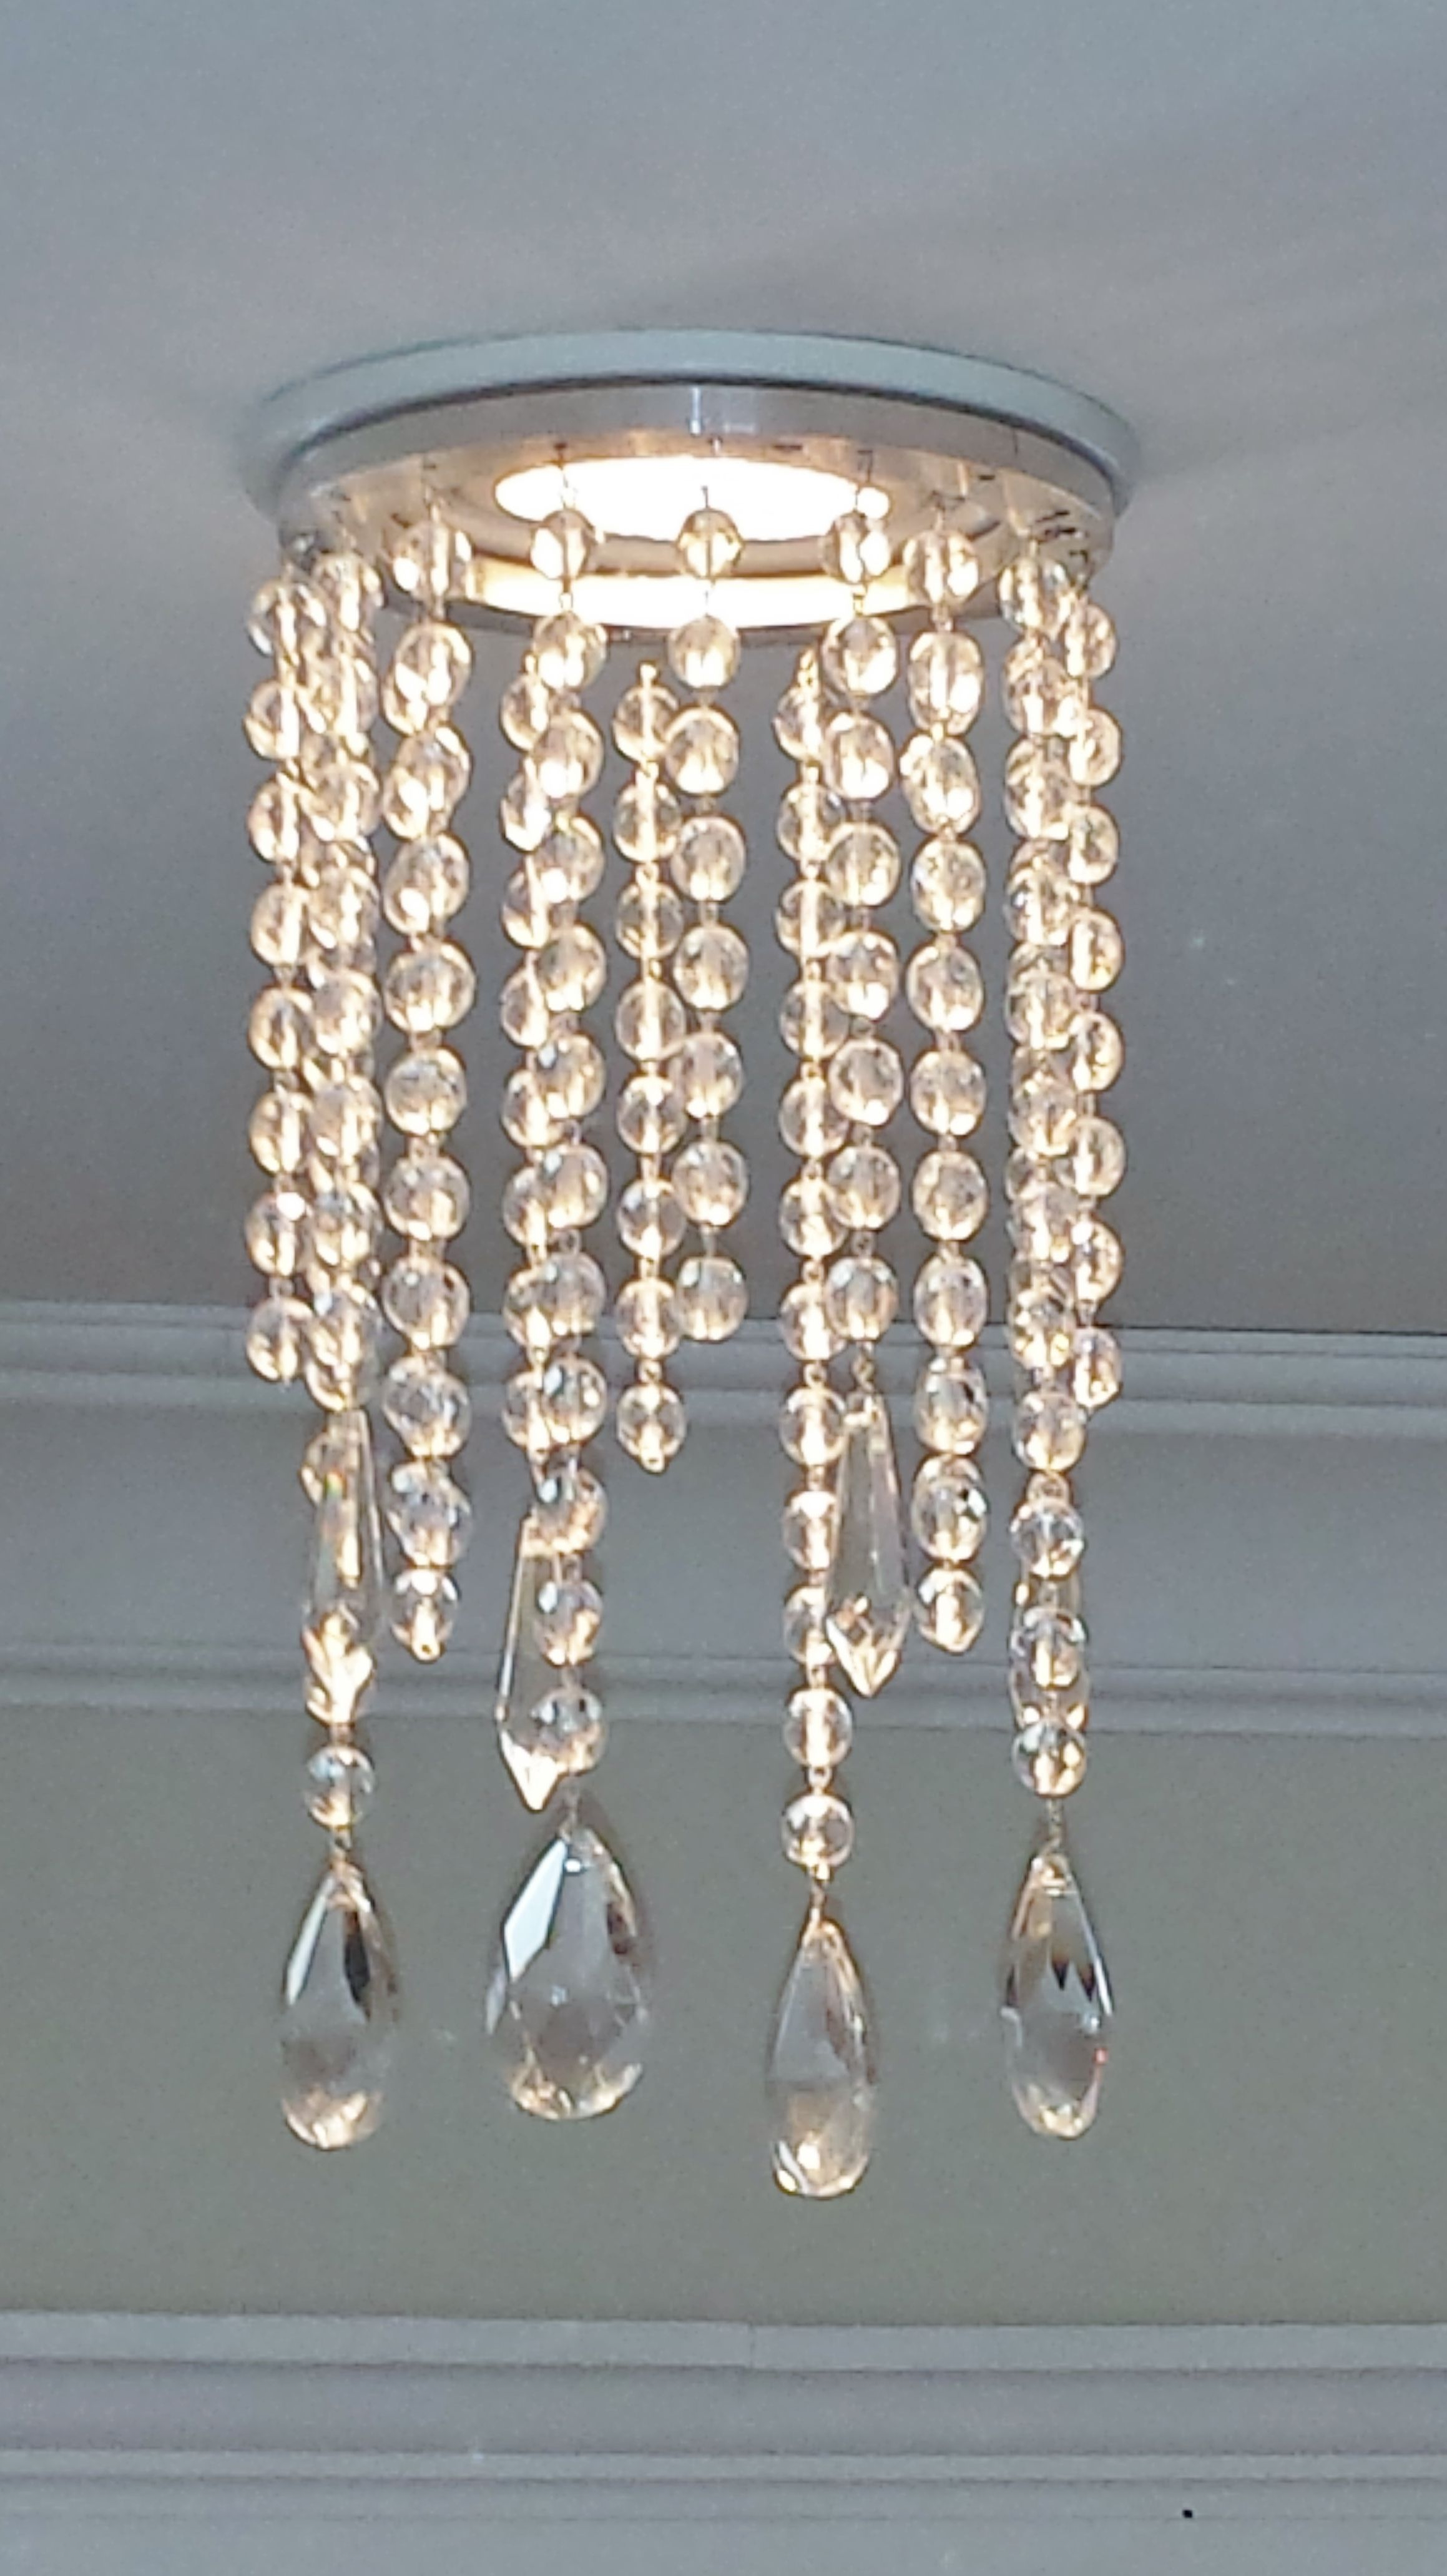 Magnetic Potlight Recessed Light Chandelier In Clear Crystal Outer Trim Measures 4 5 And Inner